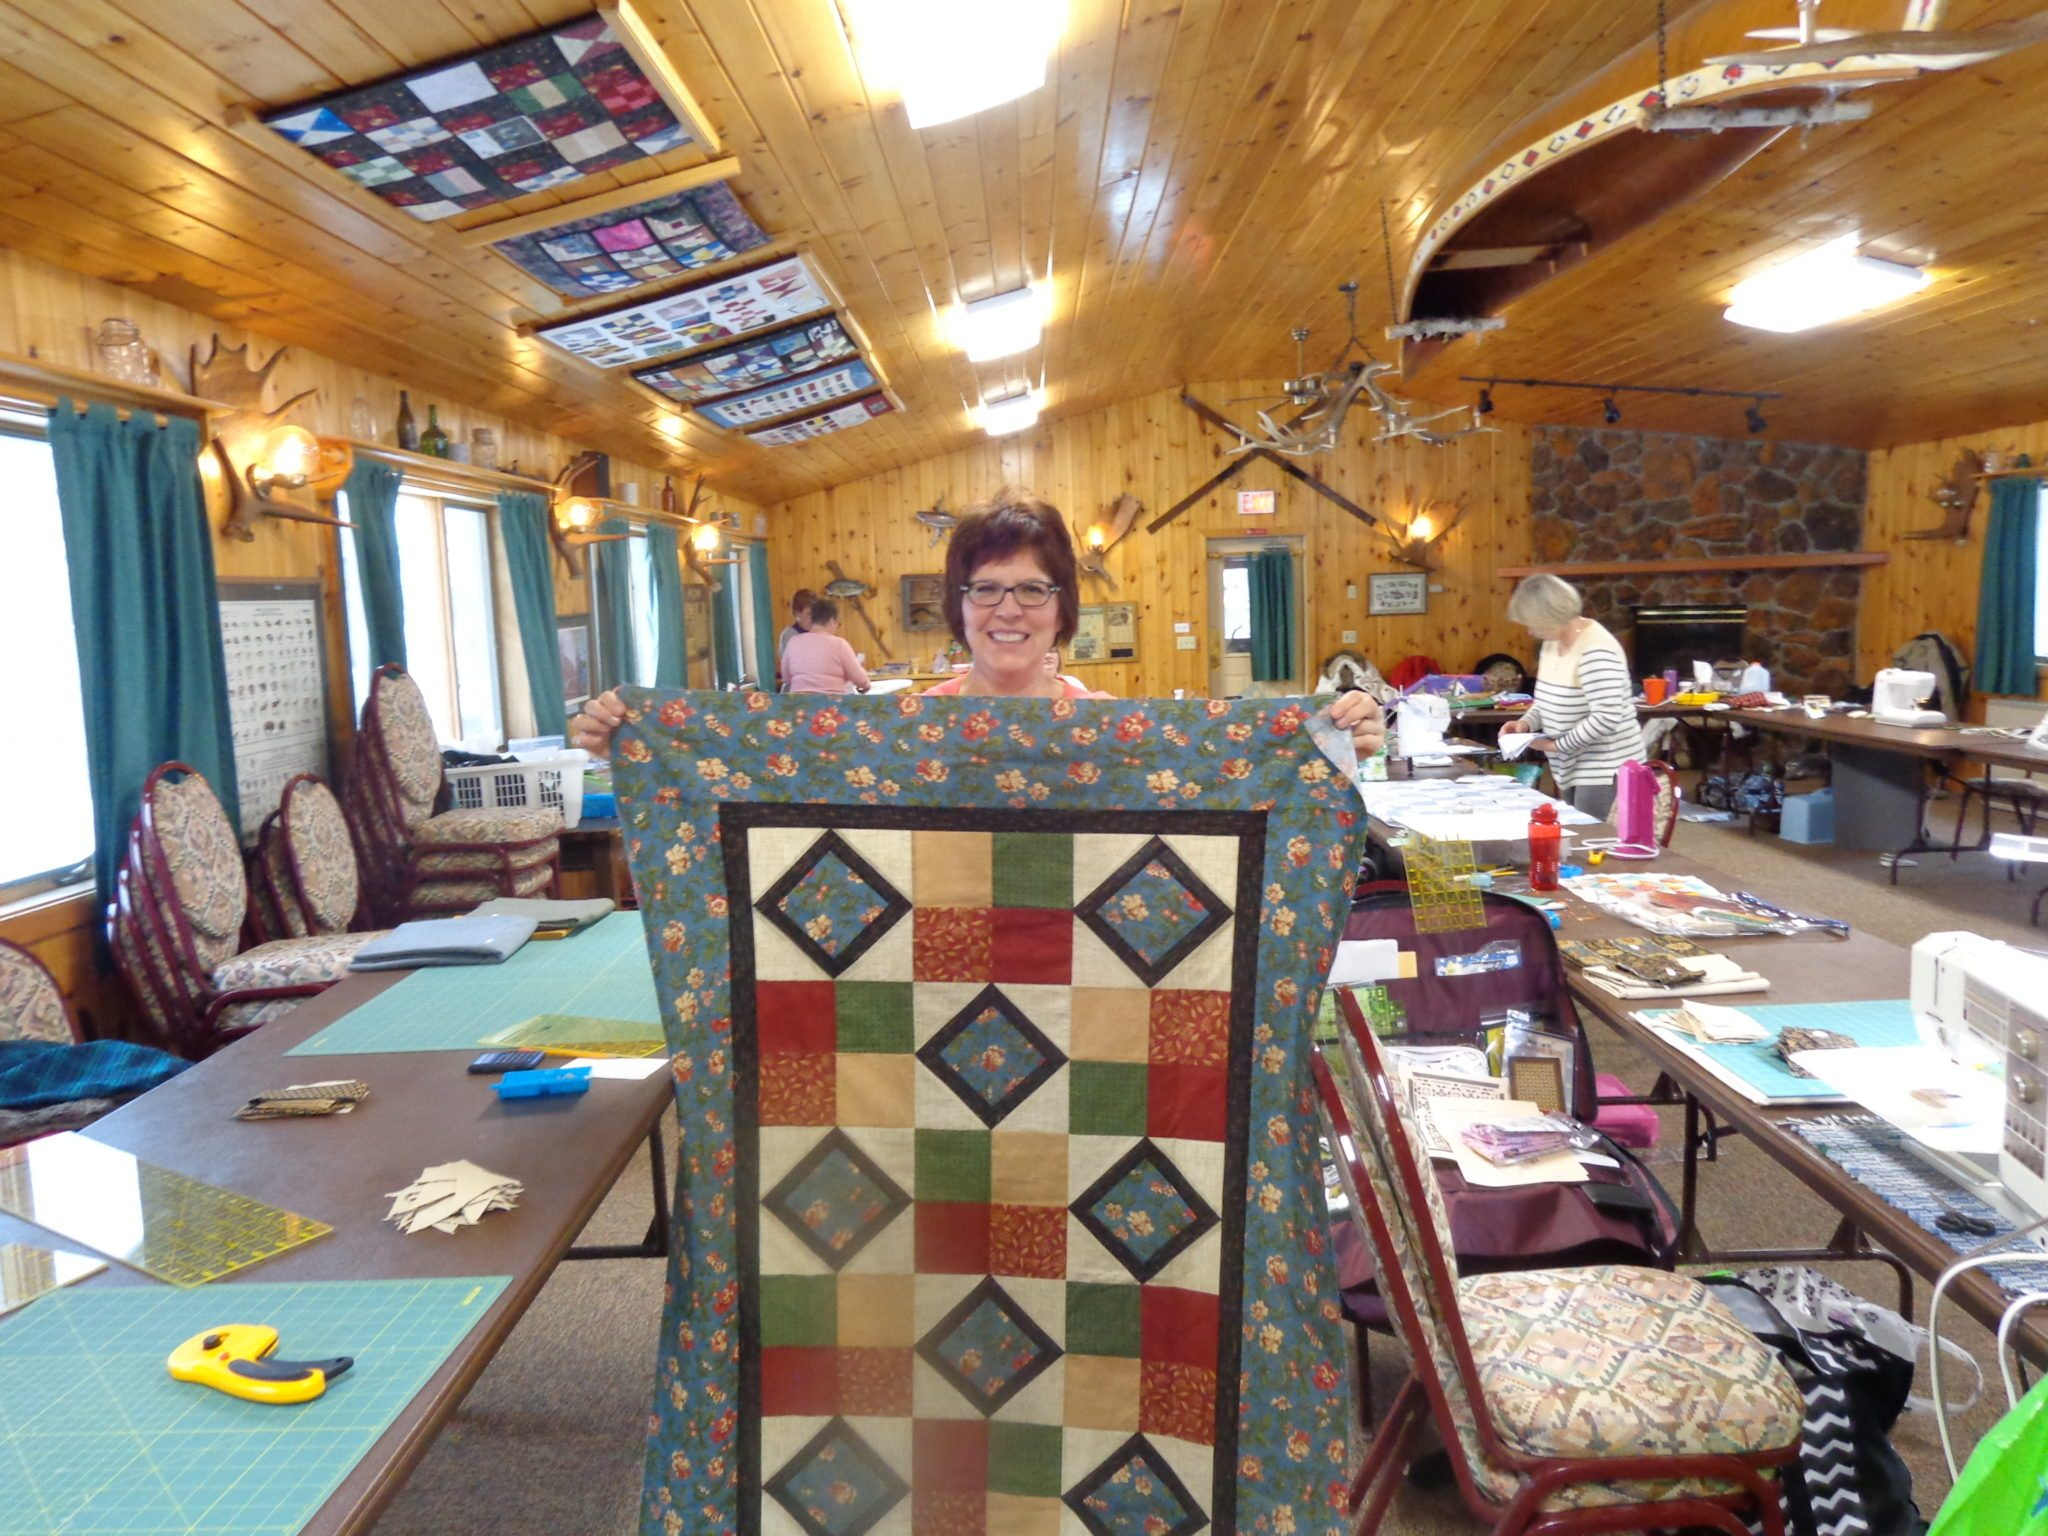 gunflintlodge, Author at Gunflint Lodge - Page 4 of 5 : quilting retreat - Adamdwight.com